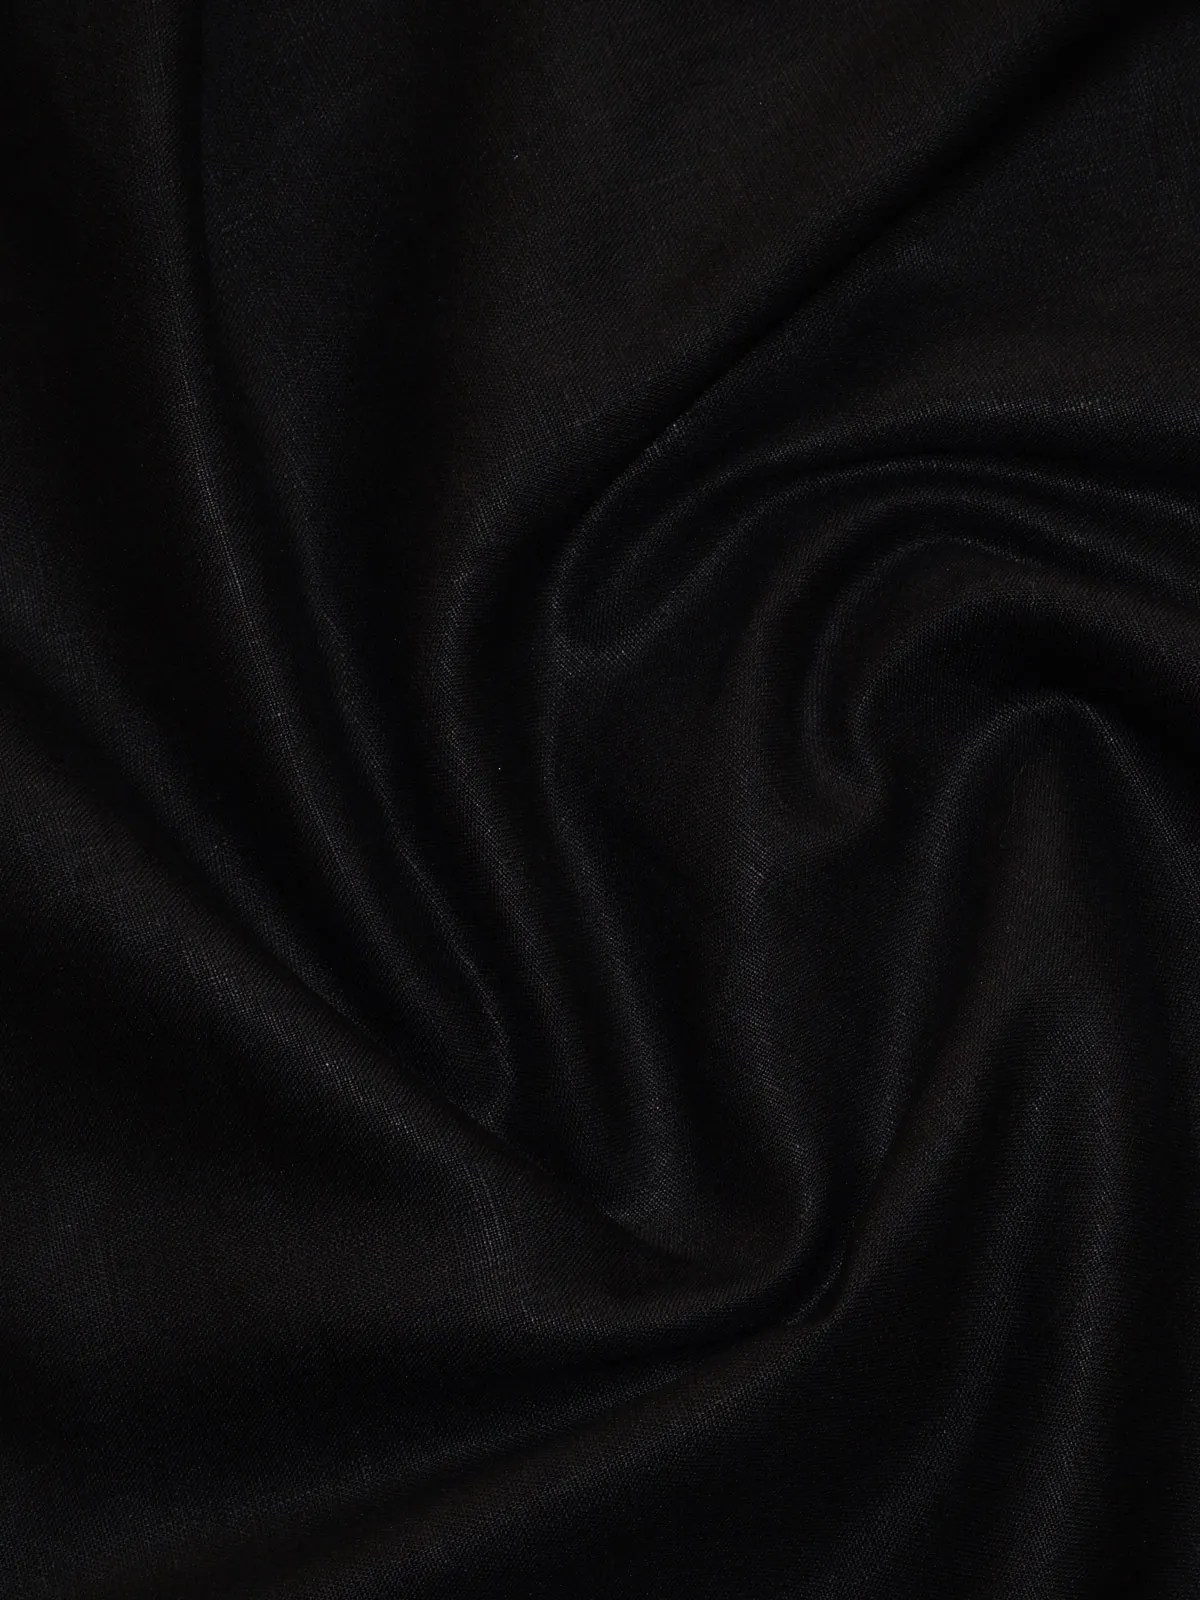 Linen Fabric Online Buy Pure Cotton And Silk Fabrics Online At Eindianaugust